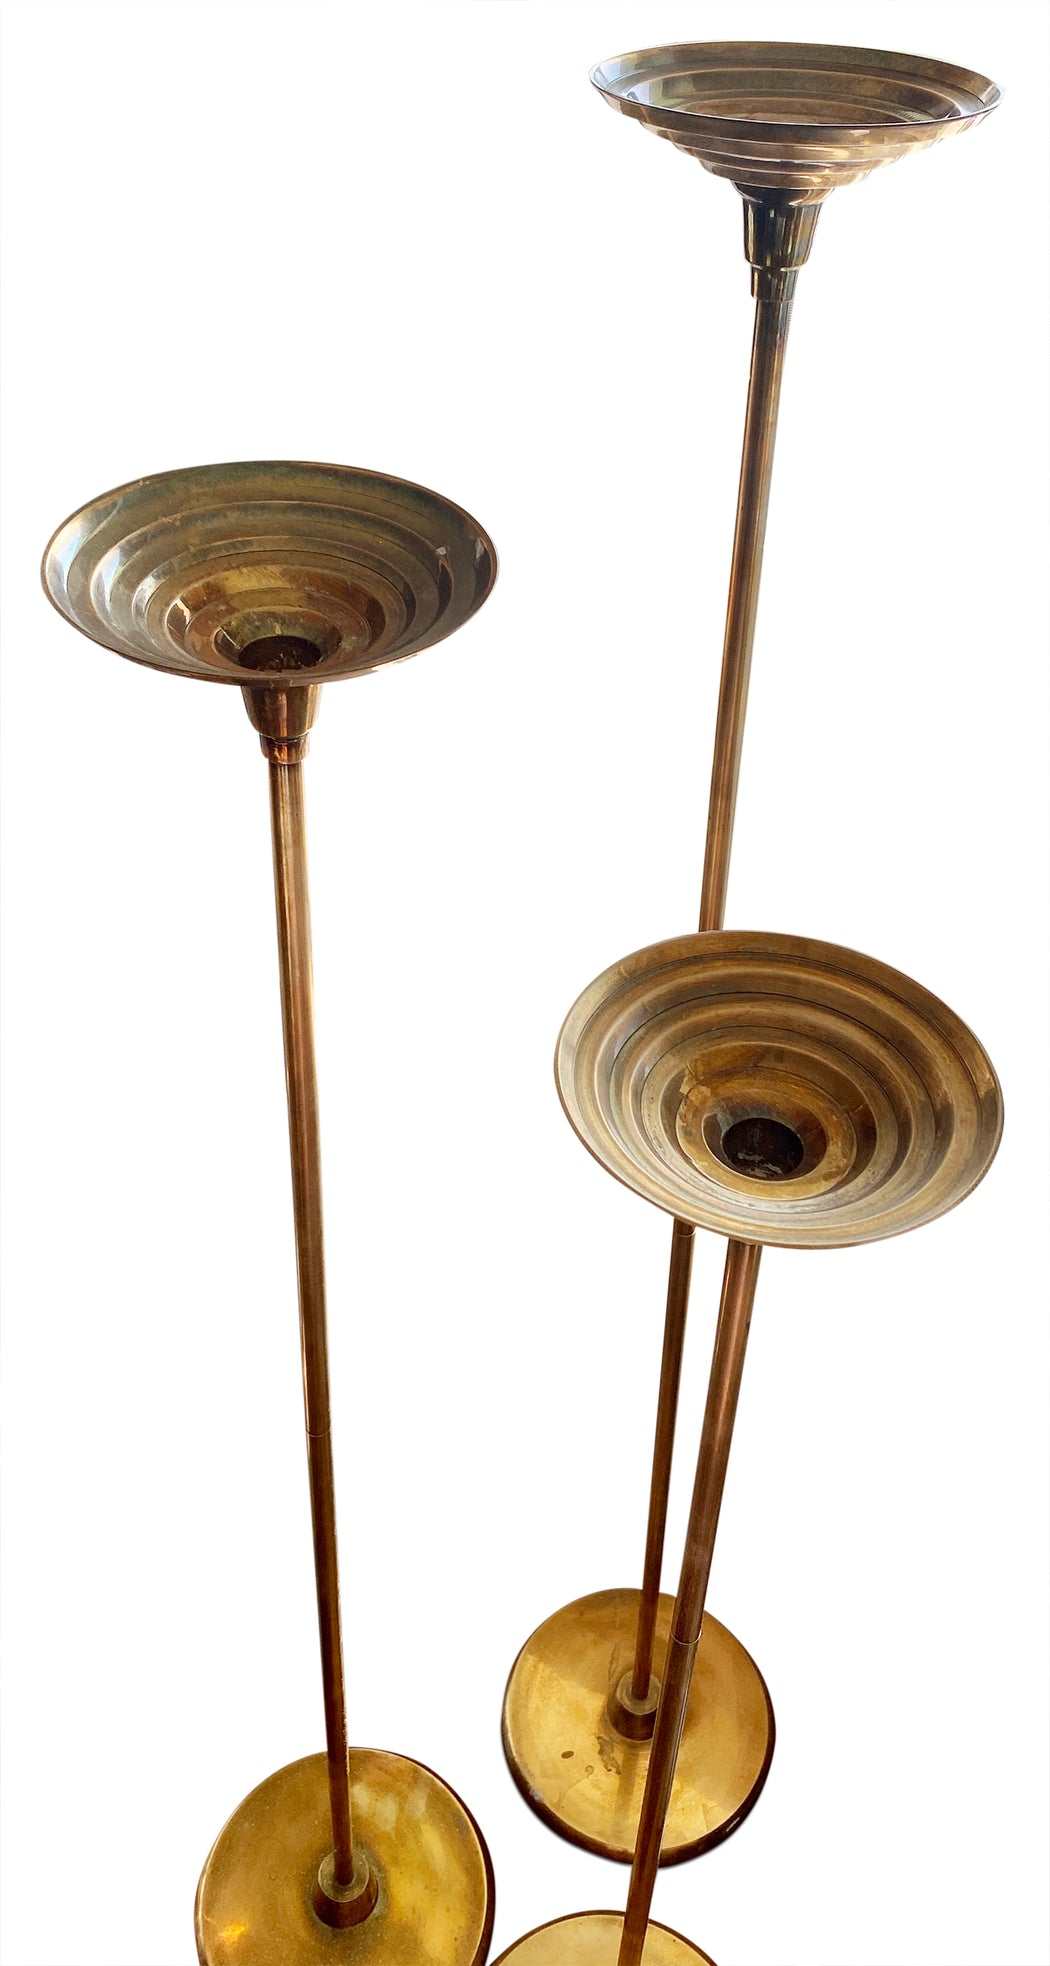 Trio of Tall Brass Candleholders